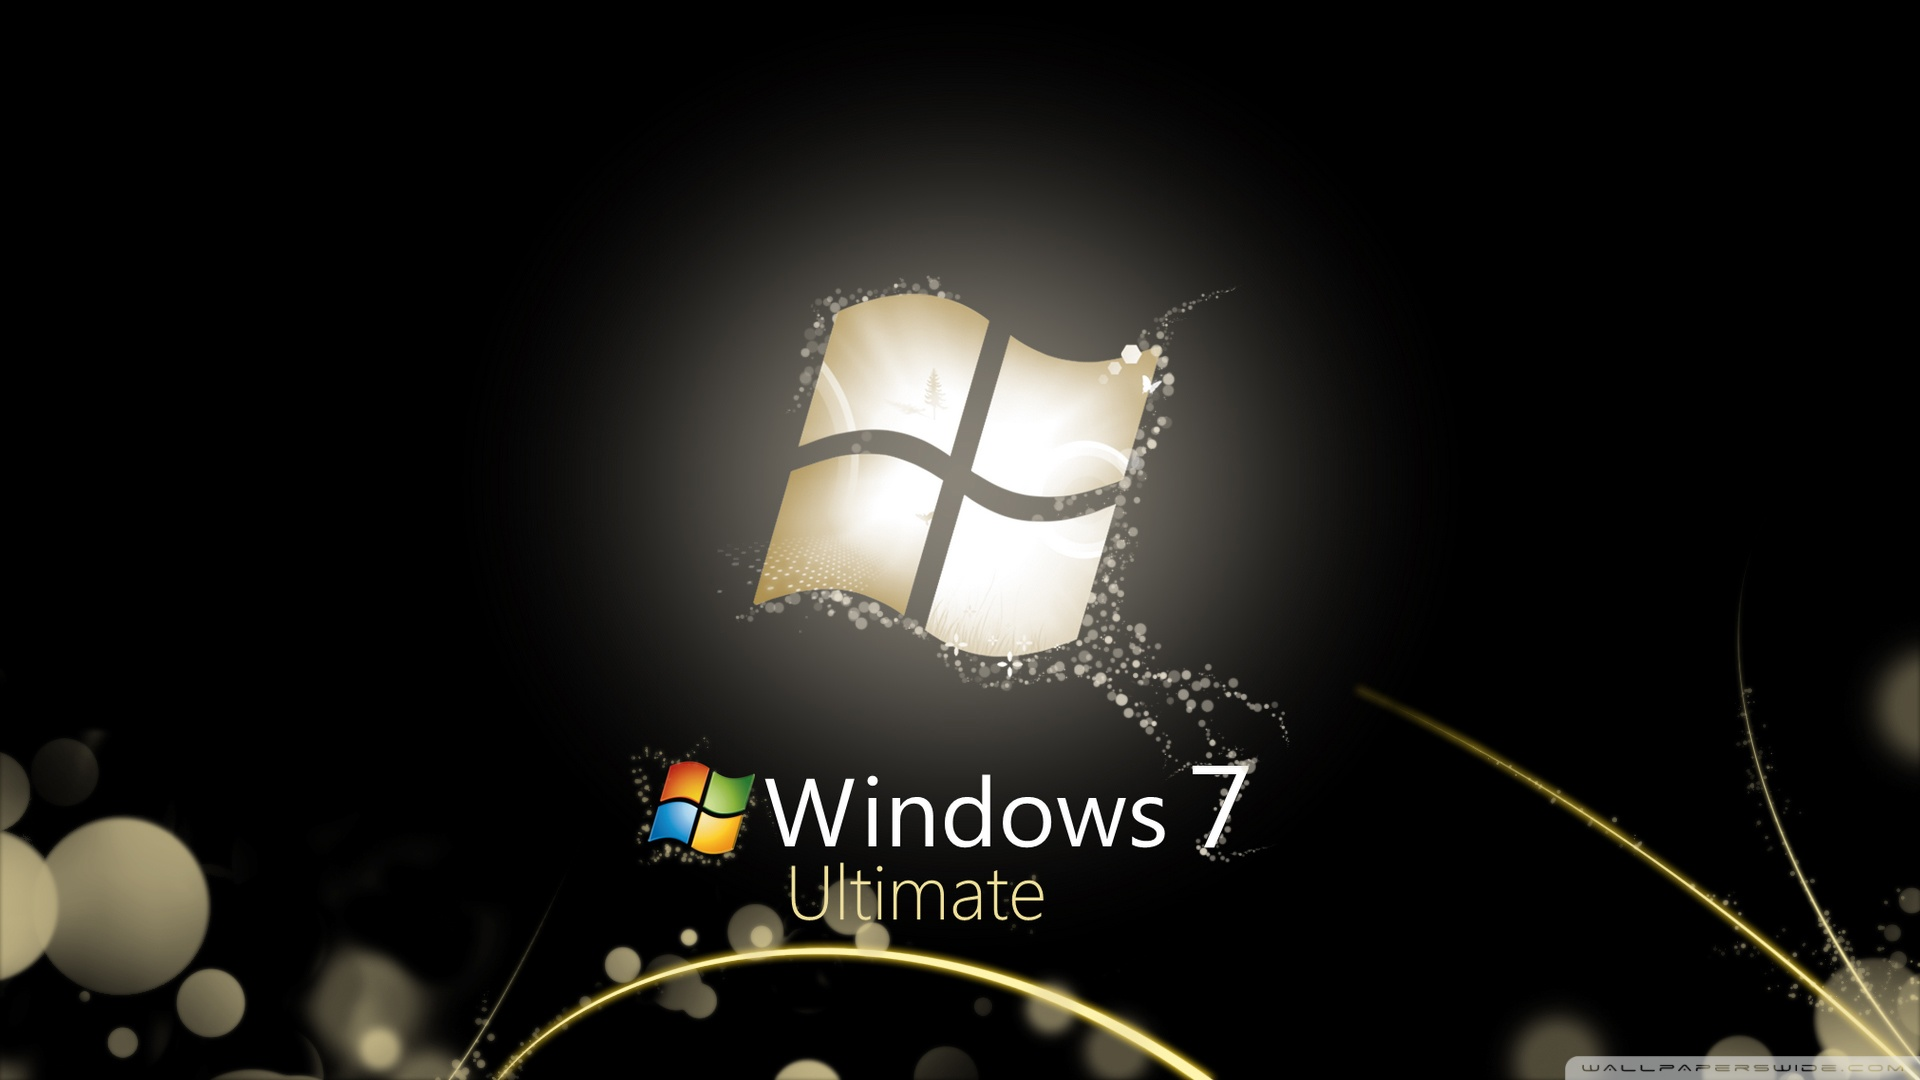 Wallpaper For Windows 7 Ultimate HD